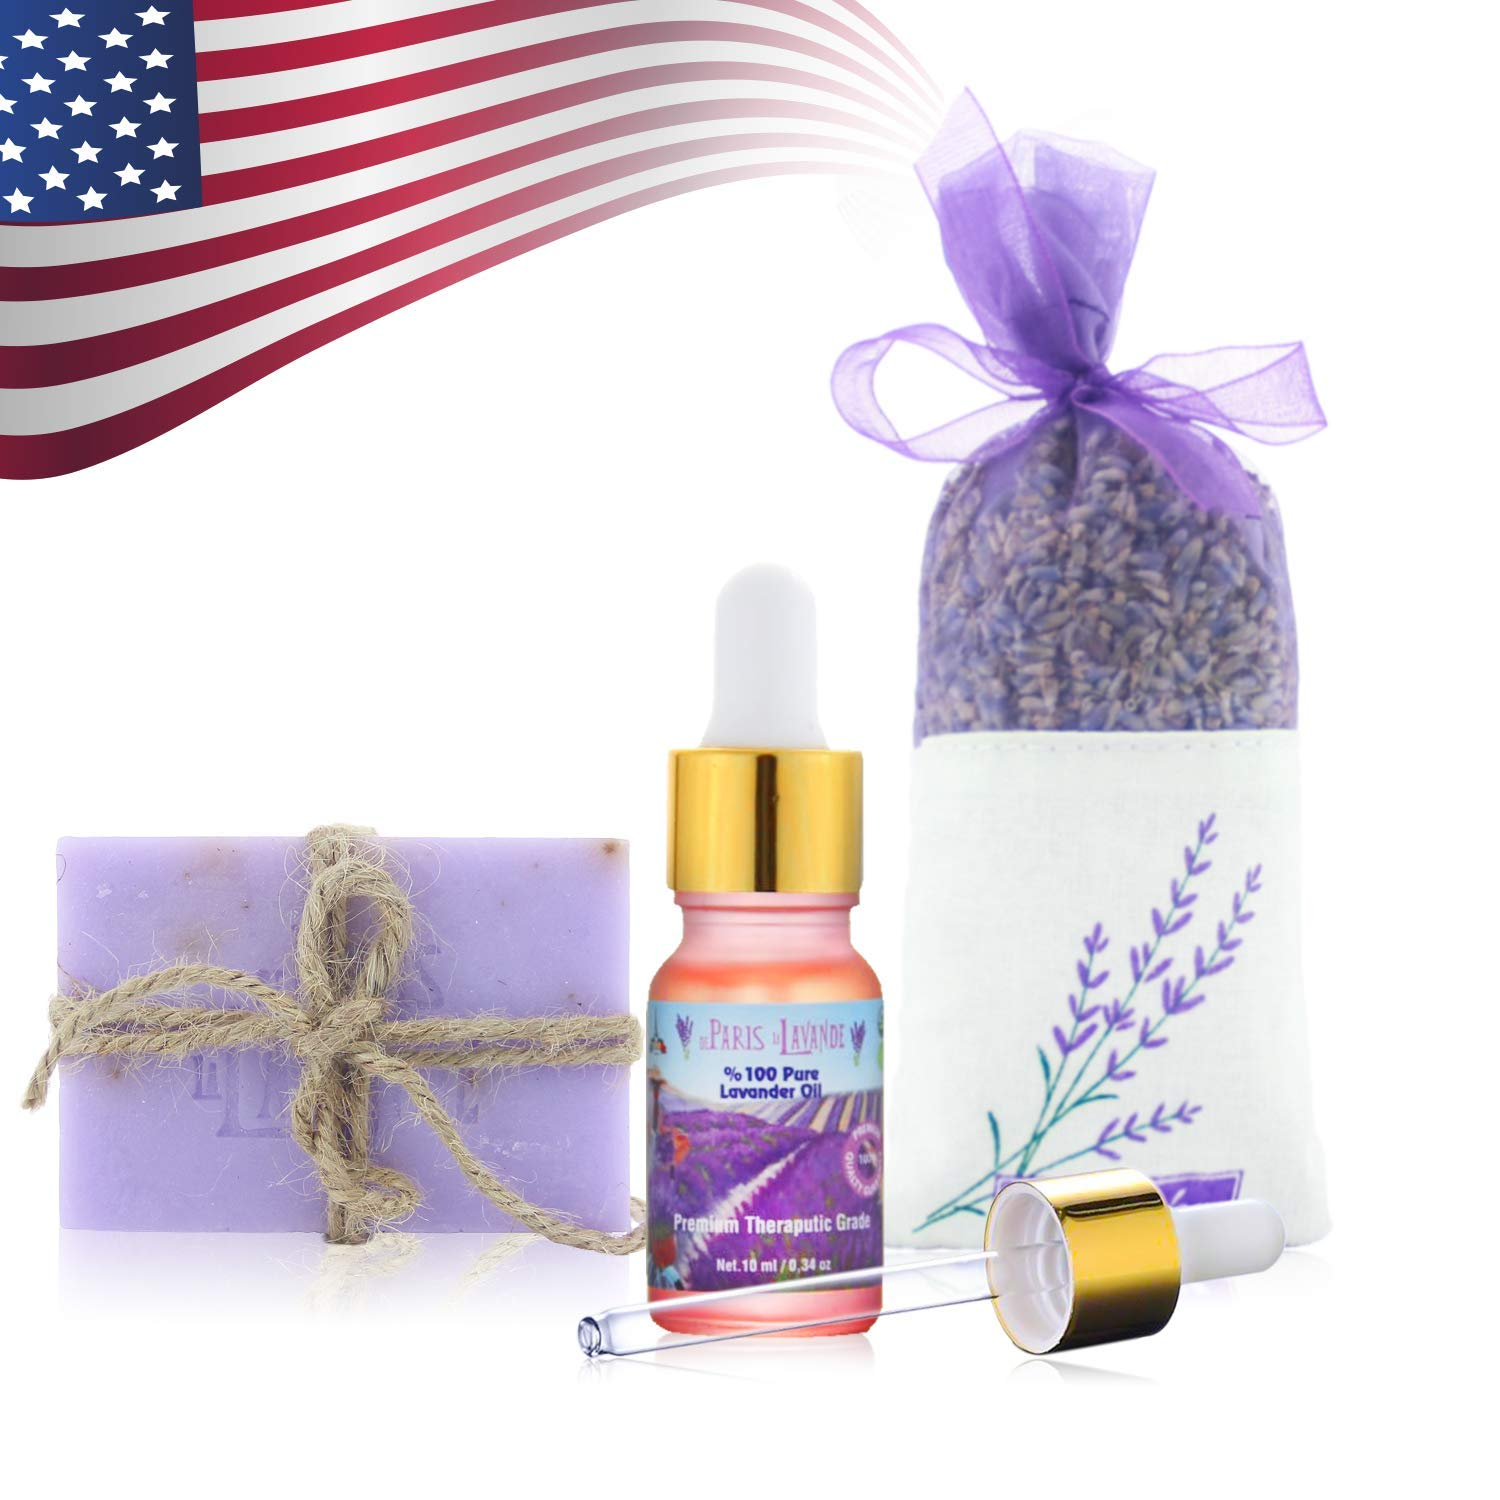 De Paris Le Lavande-Lavender Oil 10 milliliter- Glass Dropper-Lavender Bar Soap- Lavender Sachet-100 Percent Pure- All Natural -Sleep Aroma Therapy, Relaxing Bath, and  Massage